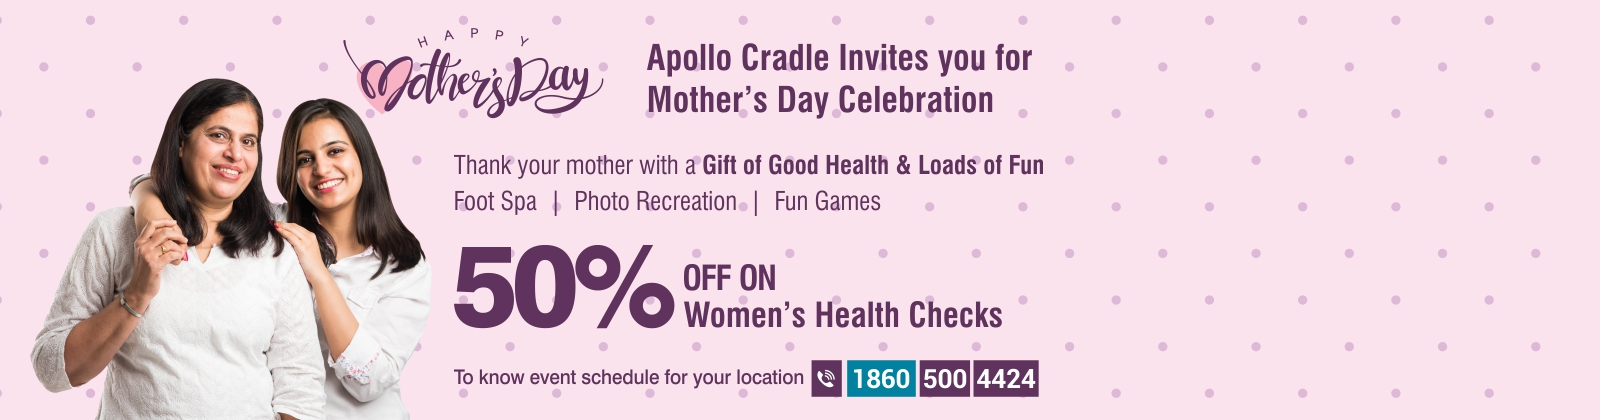 Mothers-Day-Web-cradle